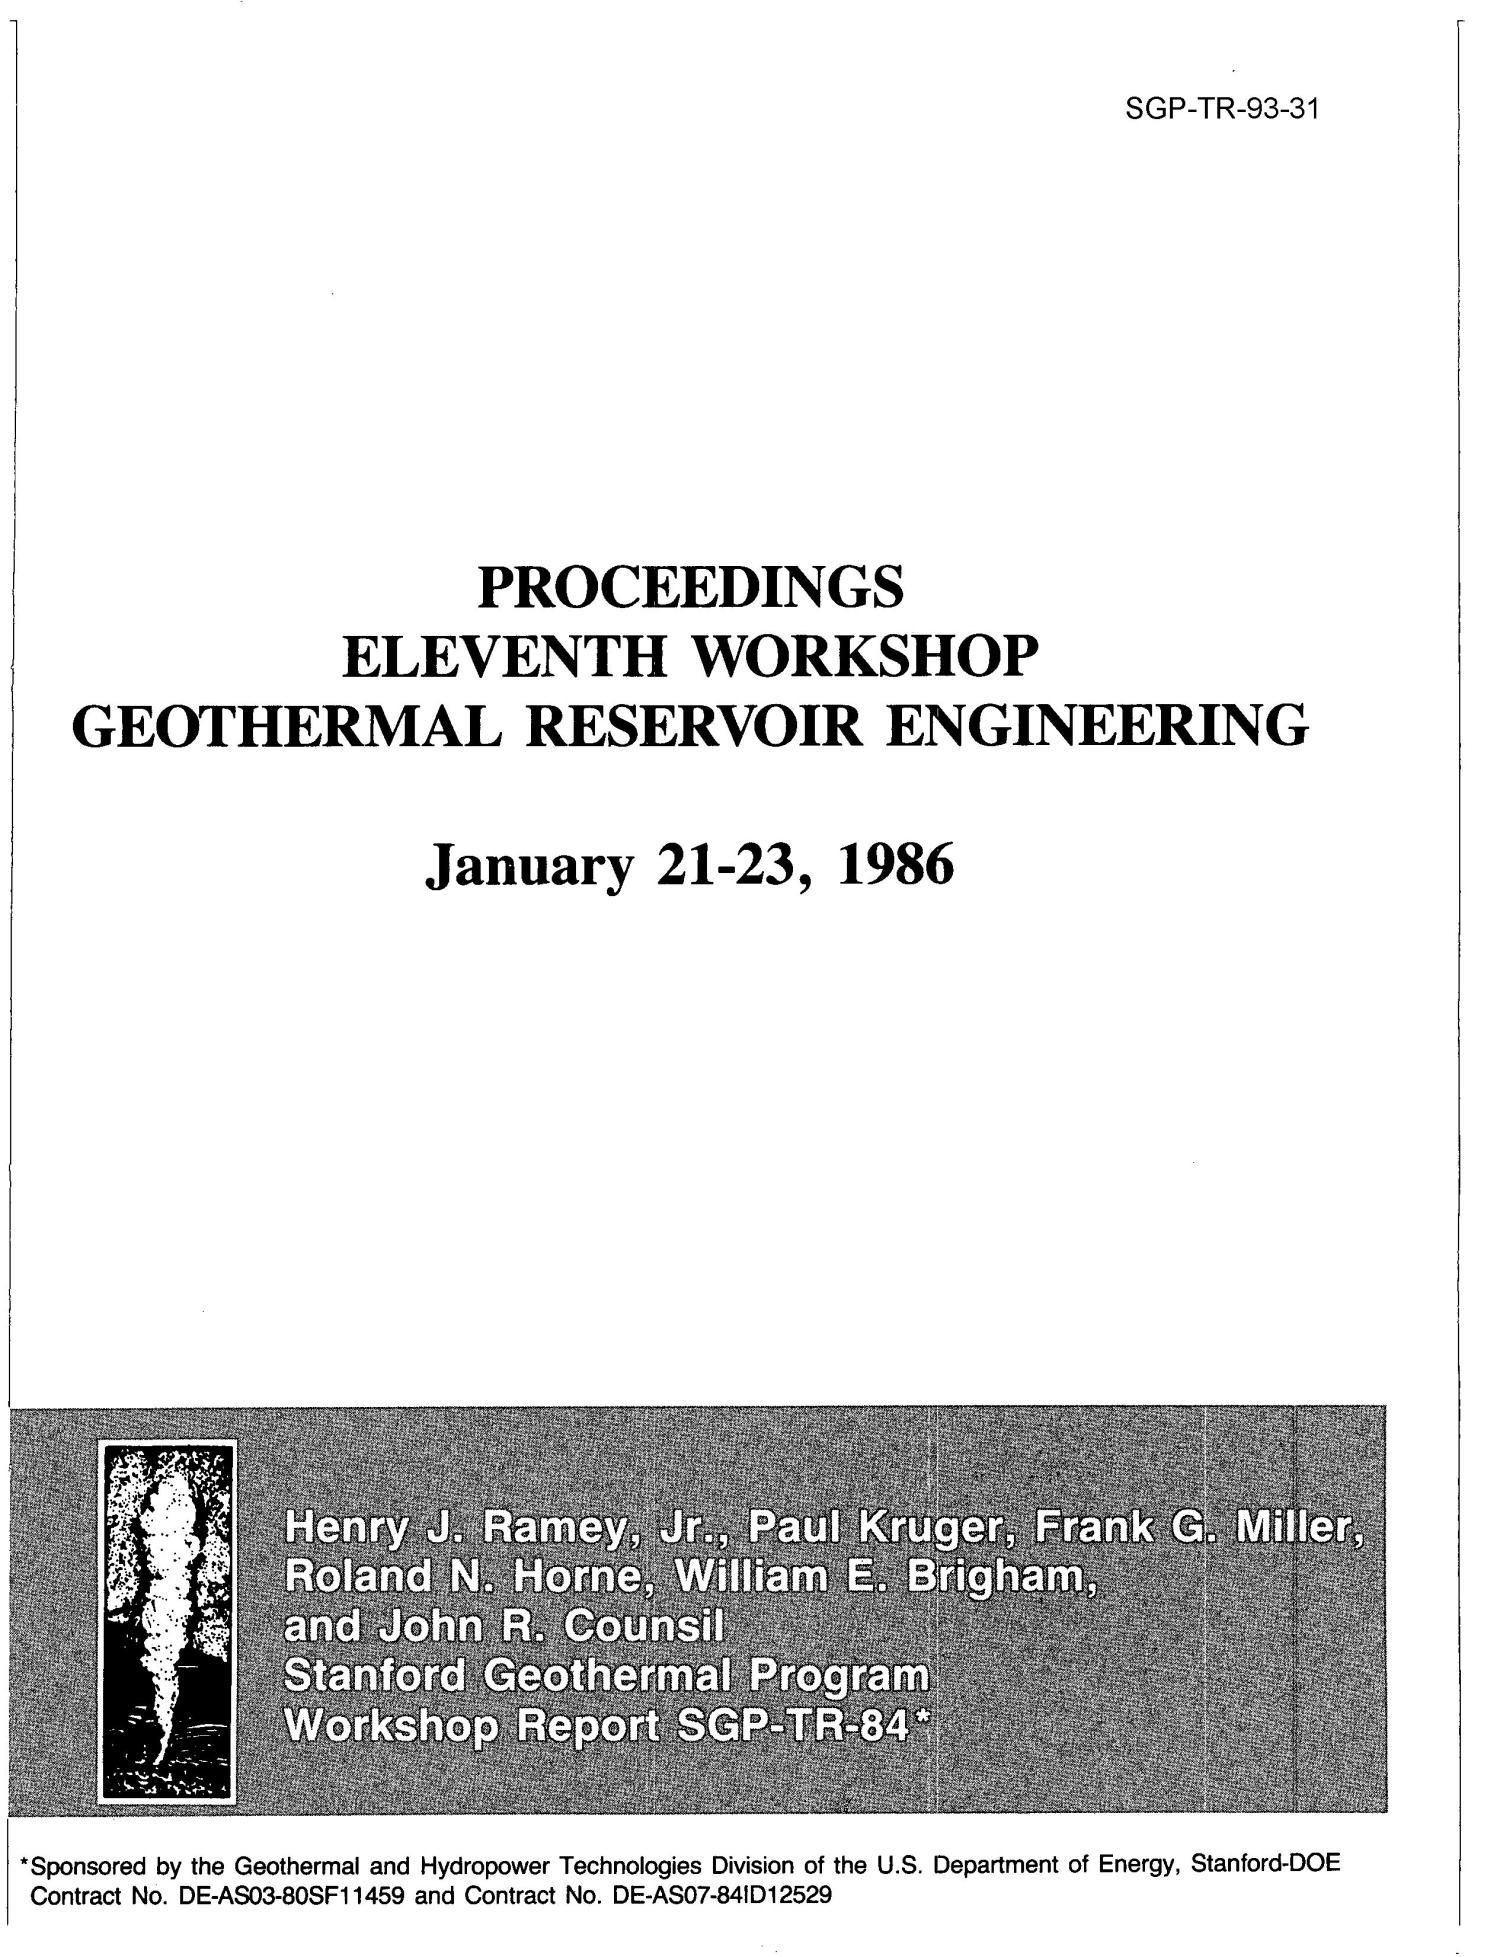 Deliverability and its Effect on Geothermal Power Costs                                                                                                      [Sequence #]: 1 of 9